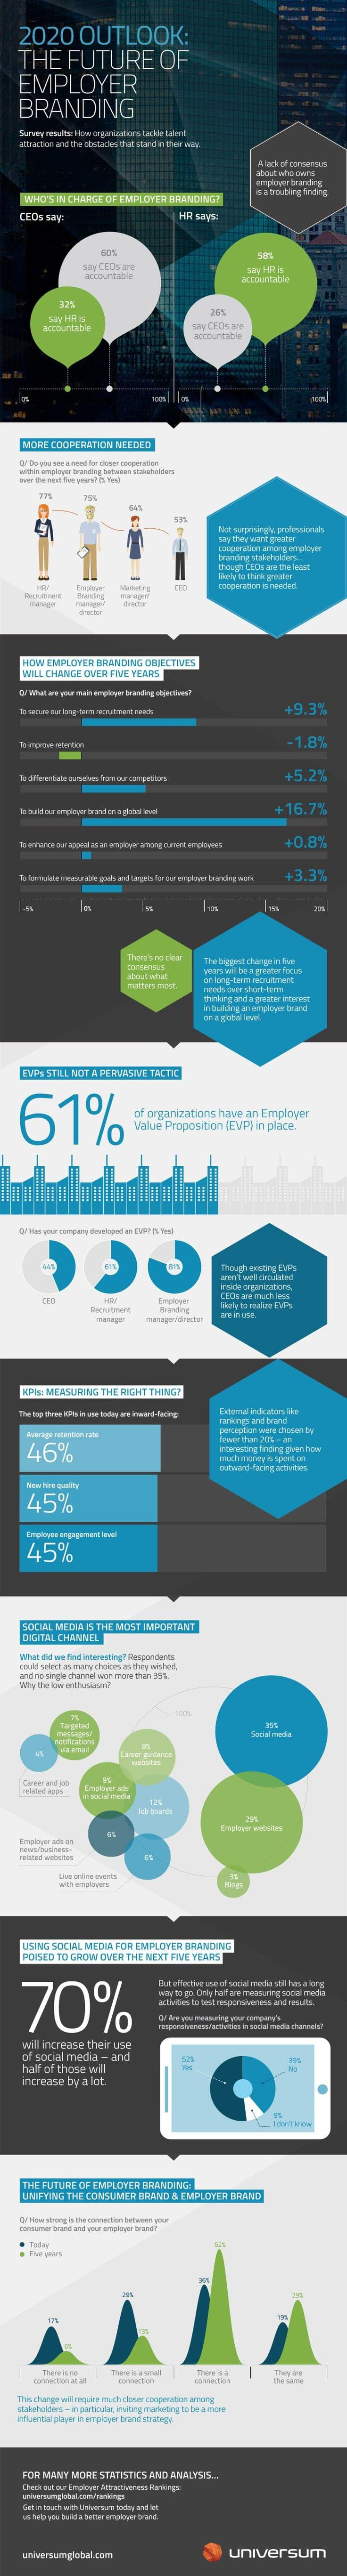 2020 Outlook- The Future of Employer Branding (Infographic)